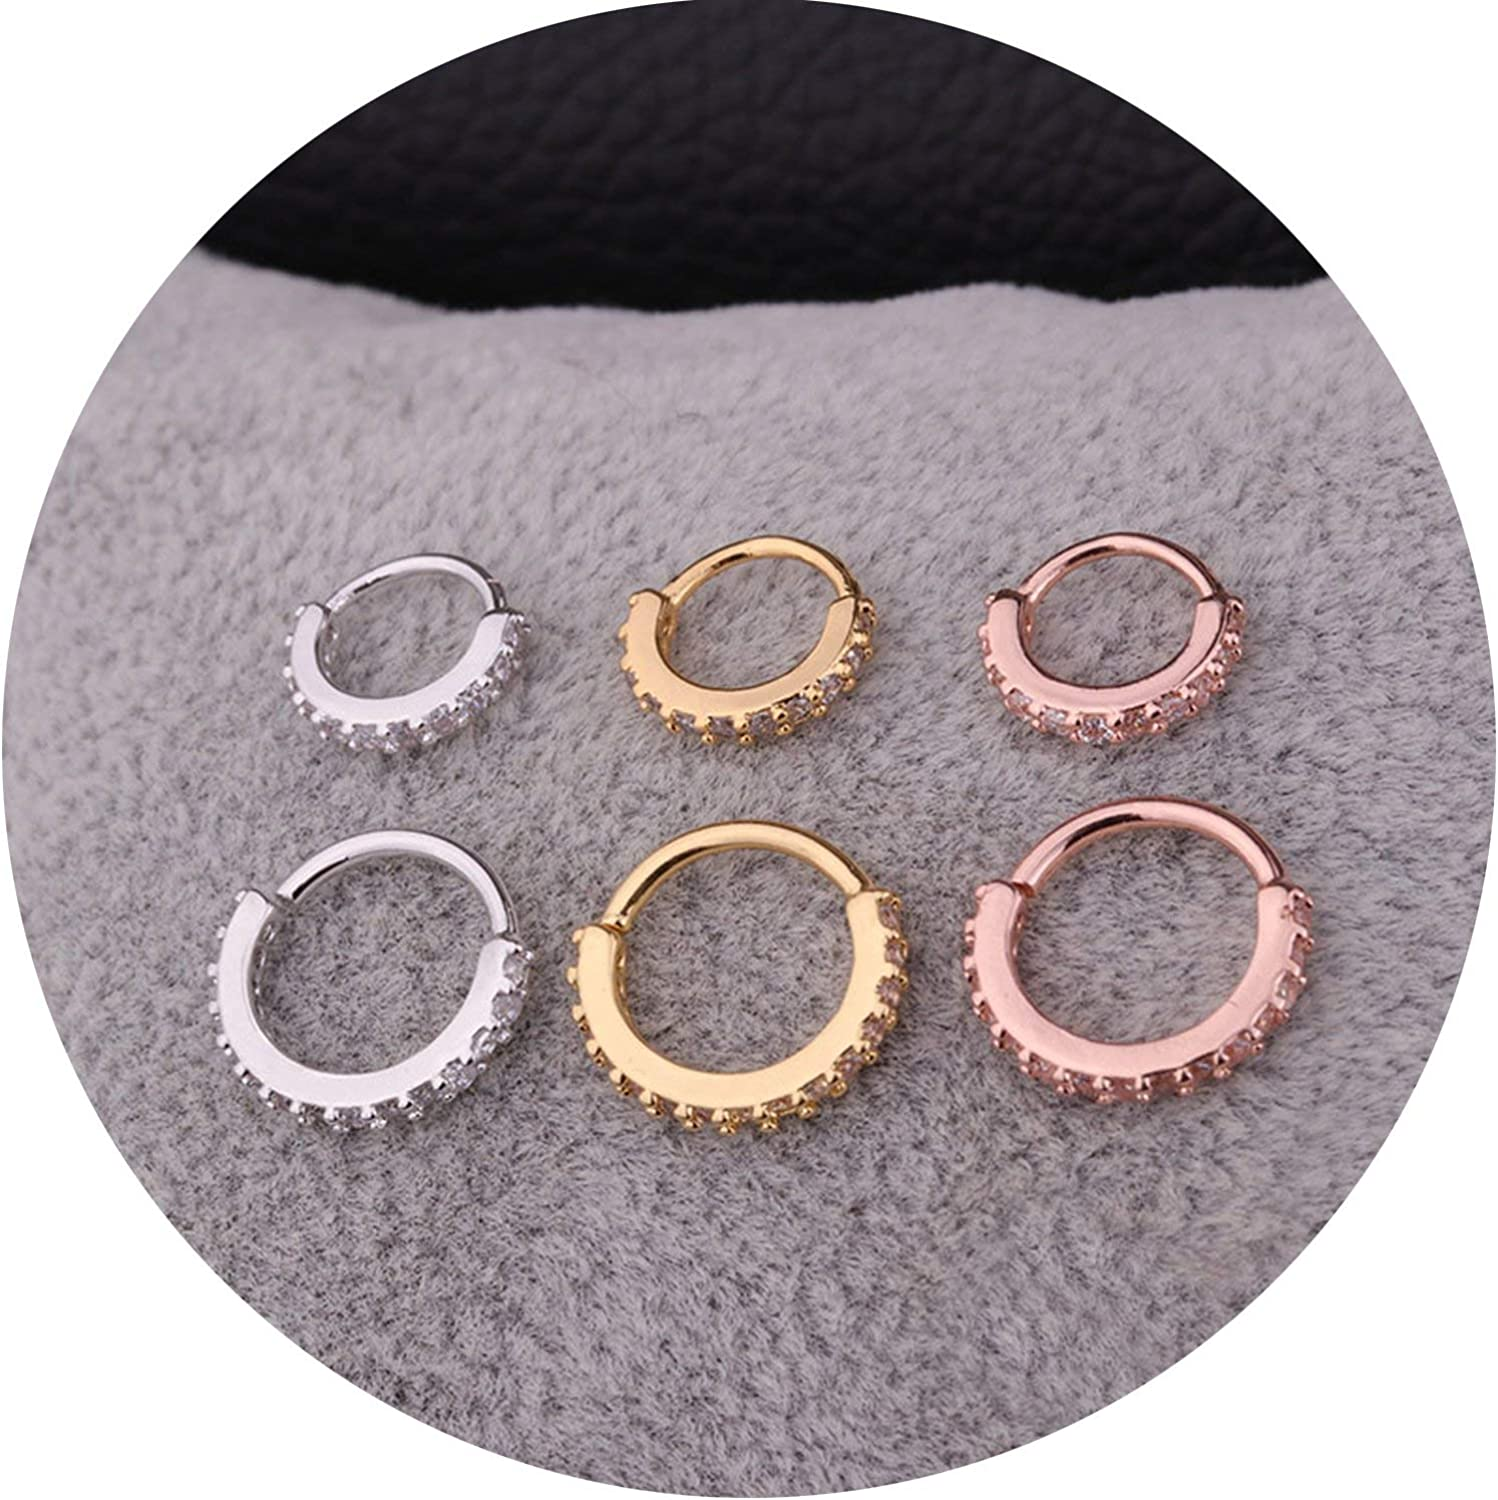 1PC Silver And Gold Color Cz Nose Hoop Helix Cartilage Earring Daith Snug Rook Tragus Ring Ear Piercing Jewelry,8mm,yellow gold